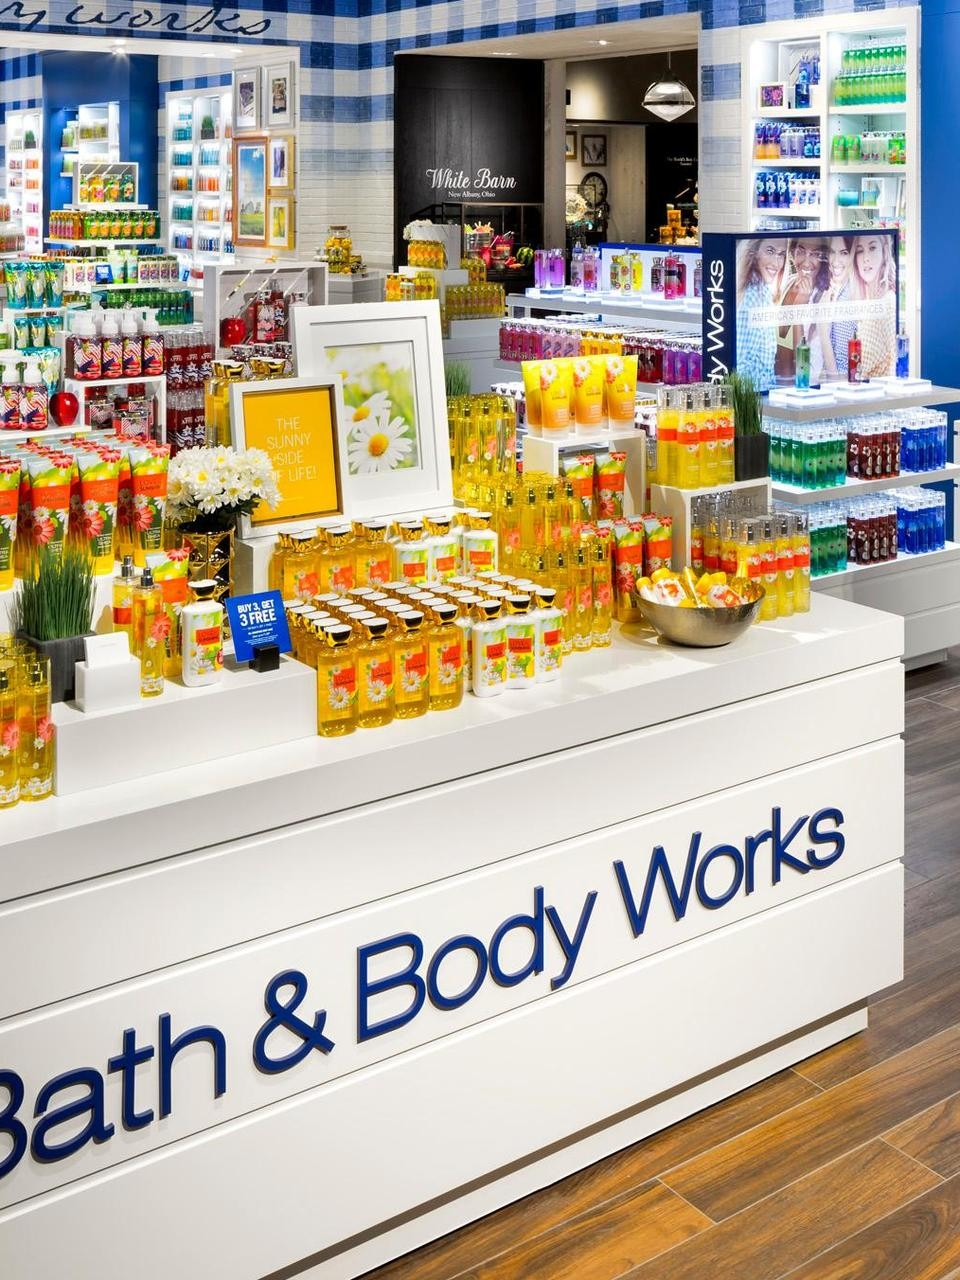 Bath And Body Works Closes All Stores In U S And Canada Amid Coronavirus Outbreak Wset